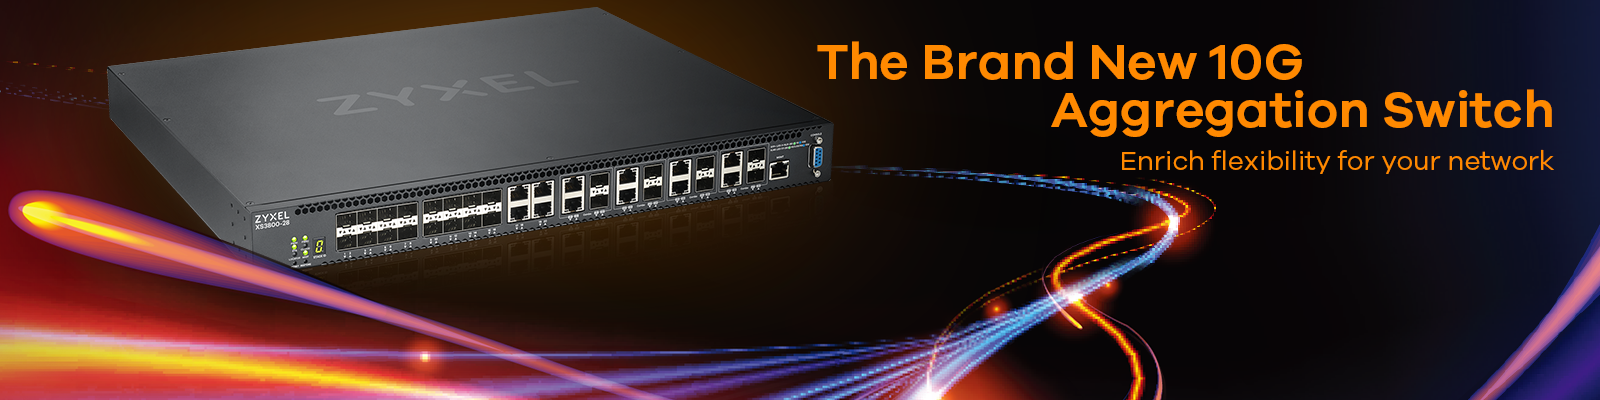 The Brand New 10G Aggregation Switch